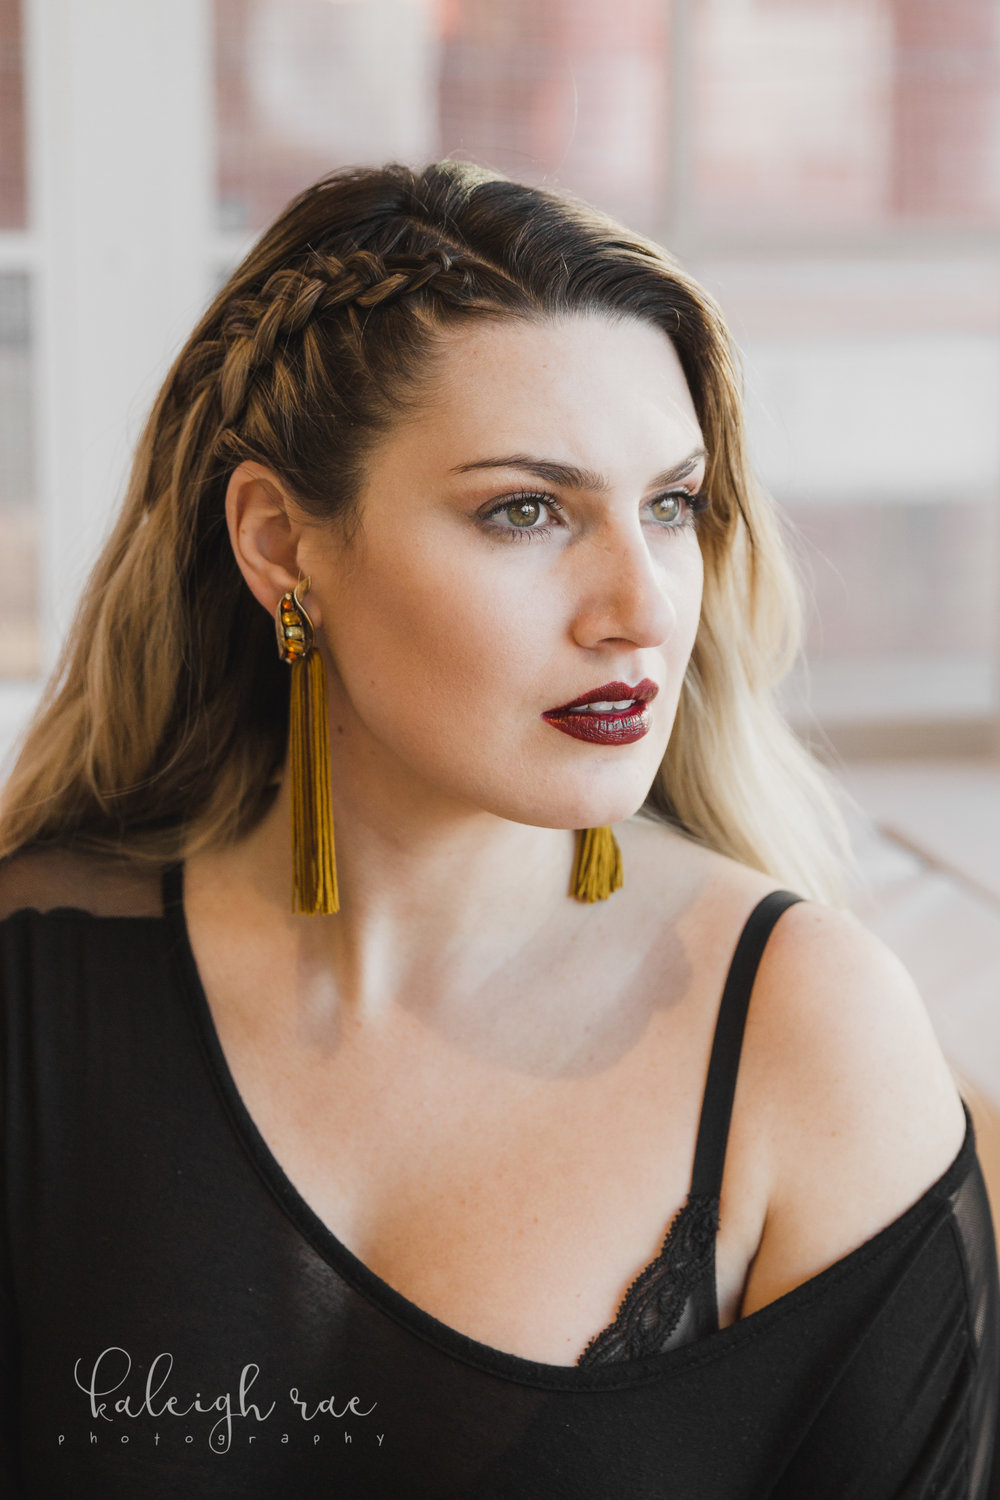 Photo Credits:  Photographer: Kaleigh Rae Photography  Earrings: #FringeGang for Neon Beautiful Design  Hair: Bombshell Studios LLC  Makeup provided by Jennifer Bradley Cosmetics